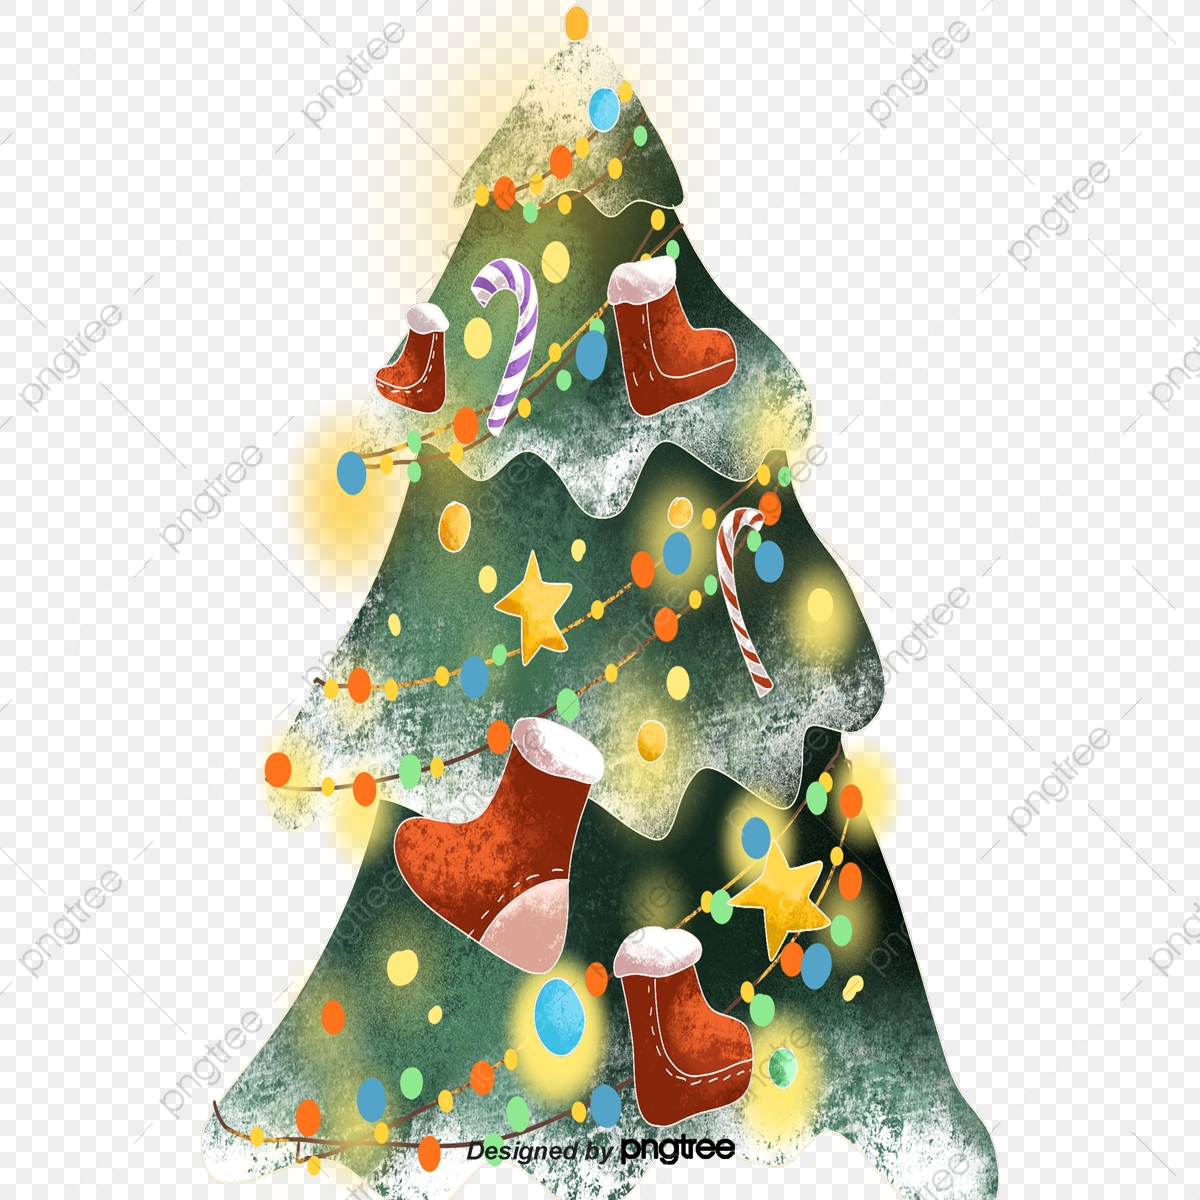 cartoon christmas trees cartoon christmas tree christmas png transparent clipart image and psd file for free download https pngtree com freepng cartoon christmas trees 4283625 html